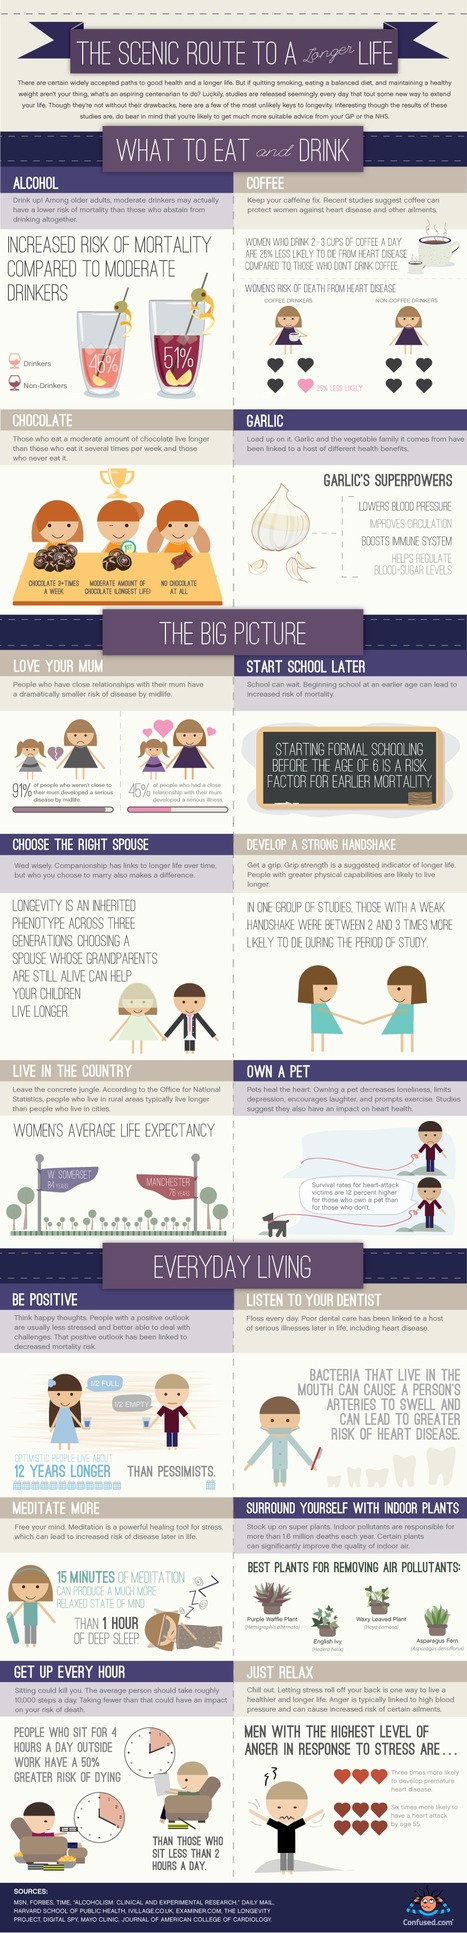 How To Adjust Your Lifestyle To Live Longer [Infographic] | Exploring Change Through Ongoing Discussions | Scoop.it